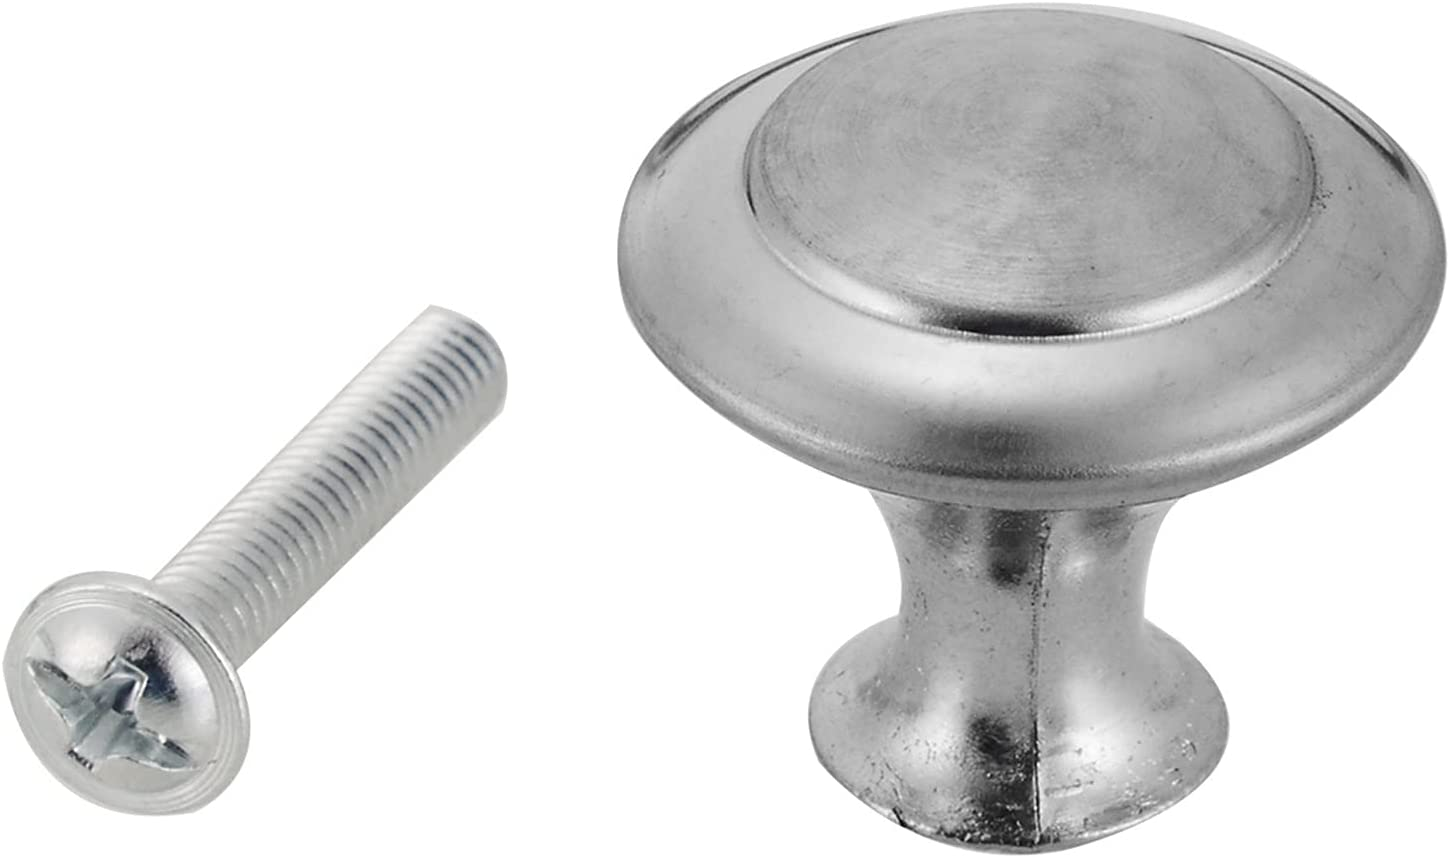 ANYUFEI Exquisite Door Handle 10pcs New Orleans Mall Round Knobs Stai Set Cabinet Limited Special Price